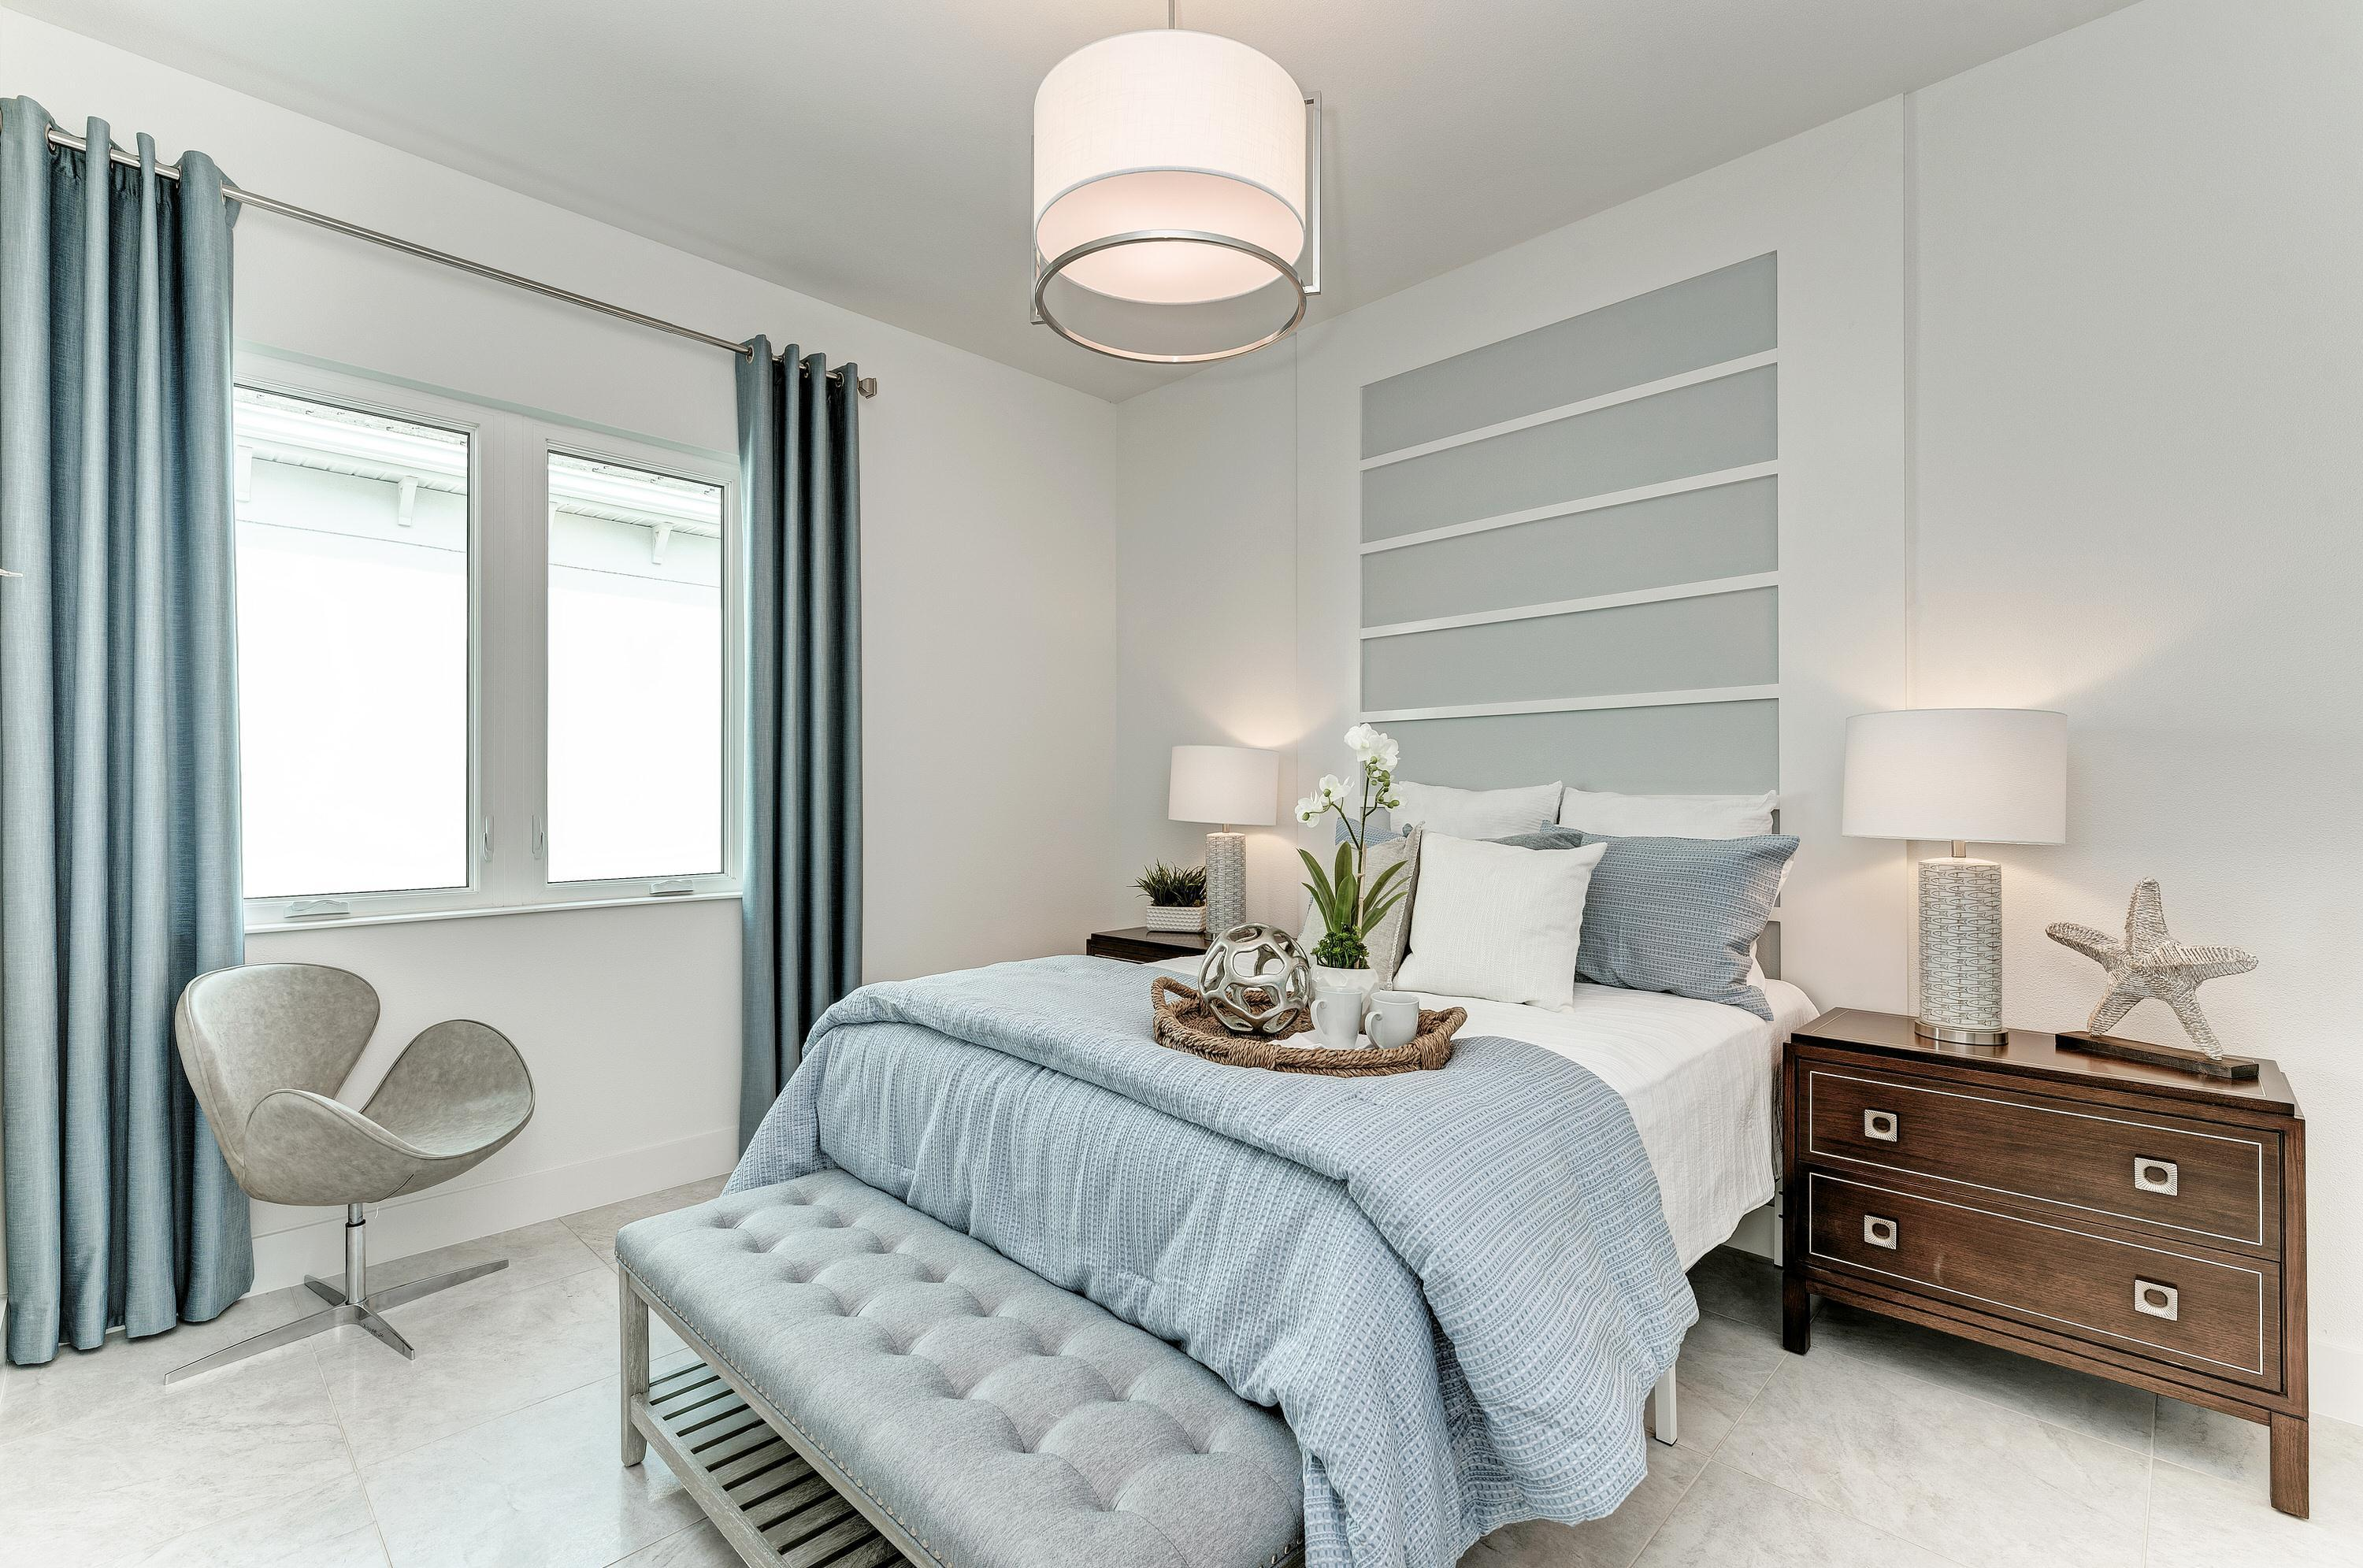 Bedroom featured in the Sea Grape By Medallion Home in Sarasota-Bradenton, FL